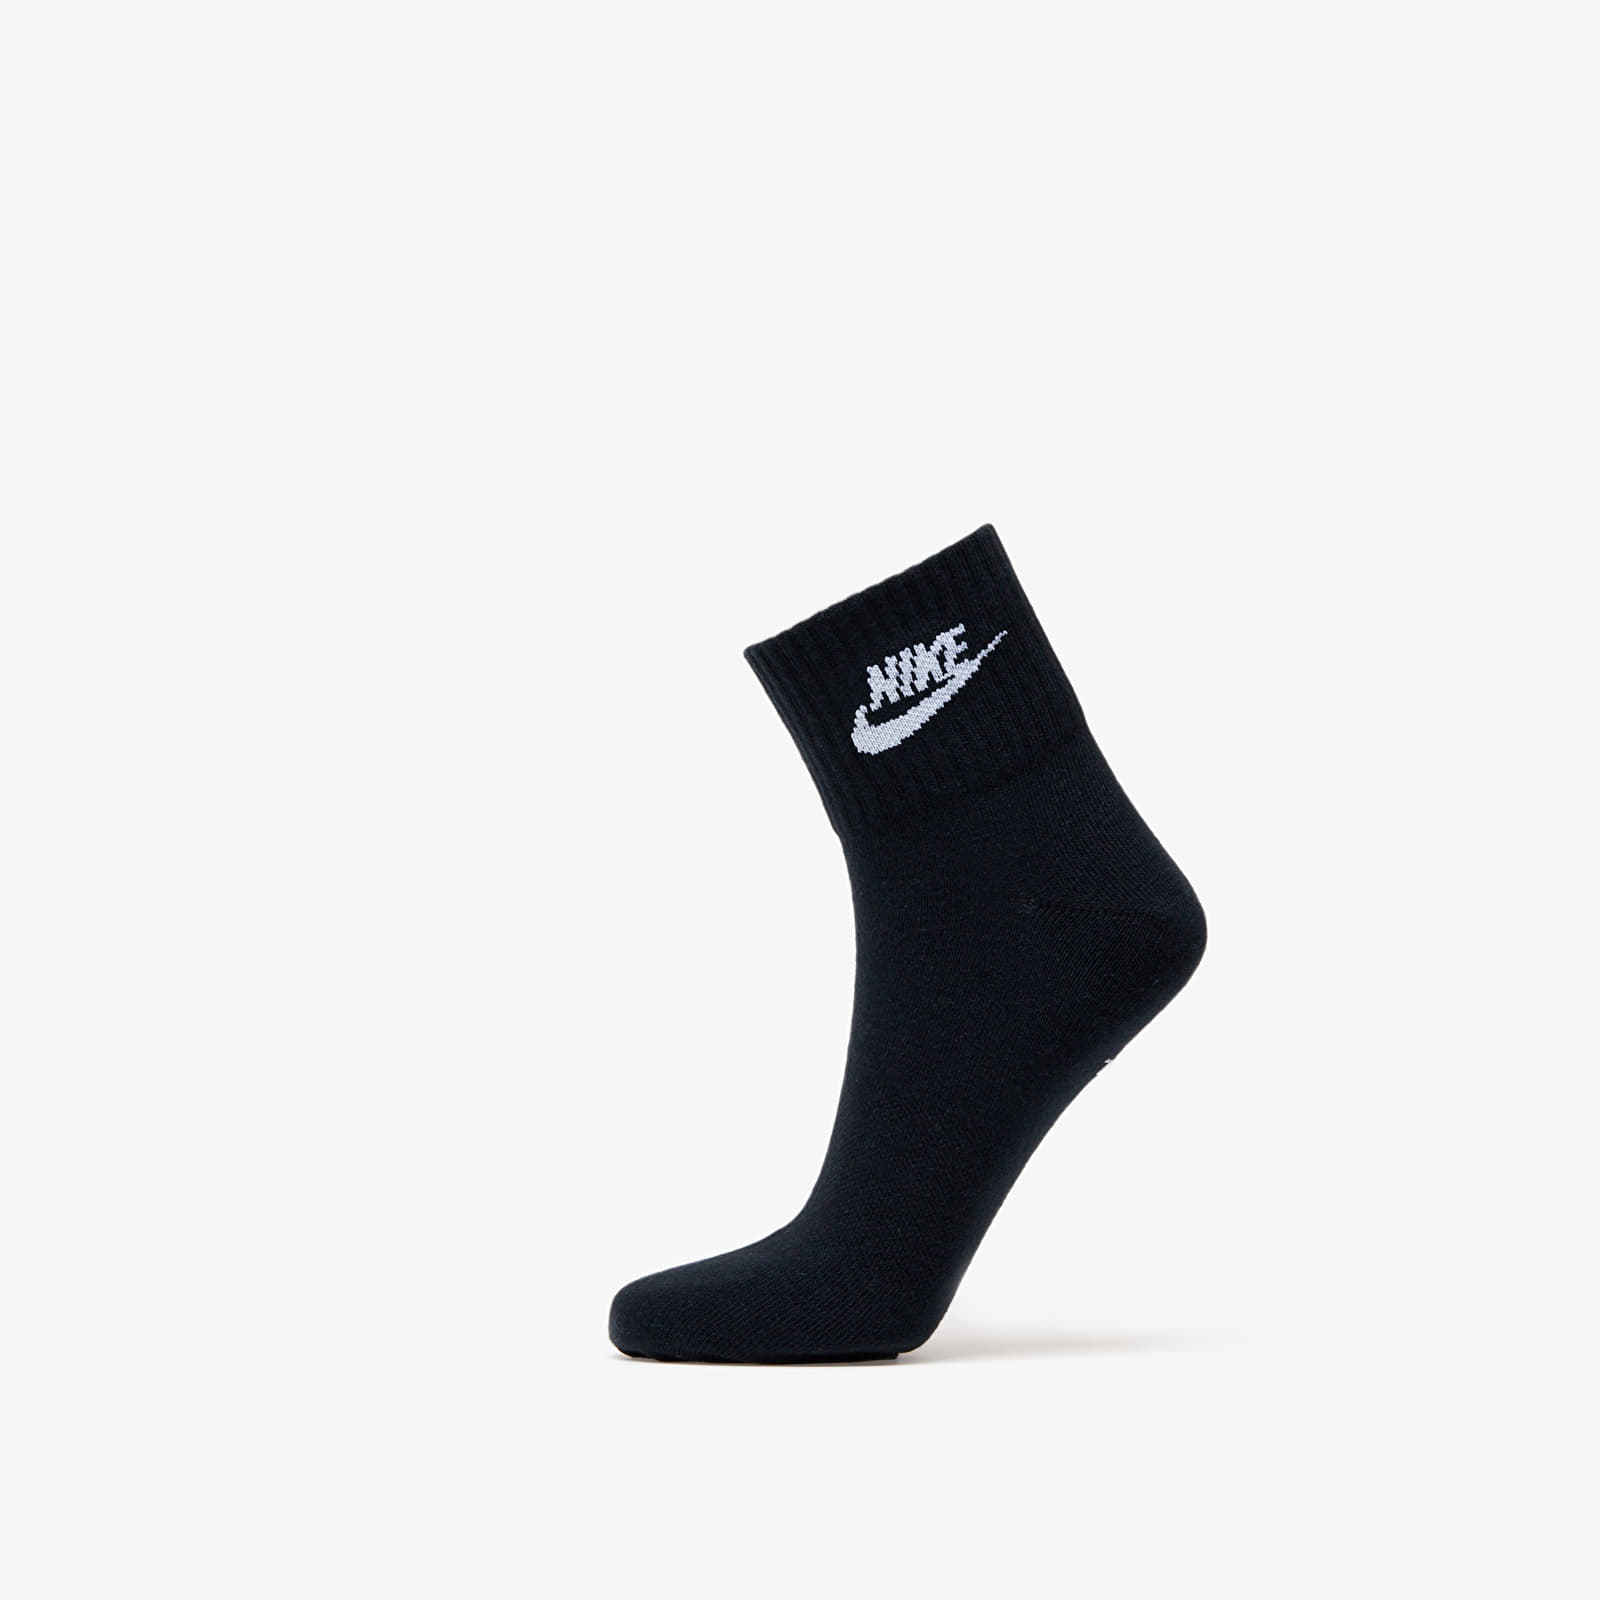 Chaussettes Nike Sportswear Everyday Essential Ankle Socks (3-pack) Black/ White